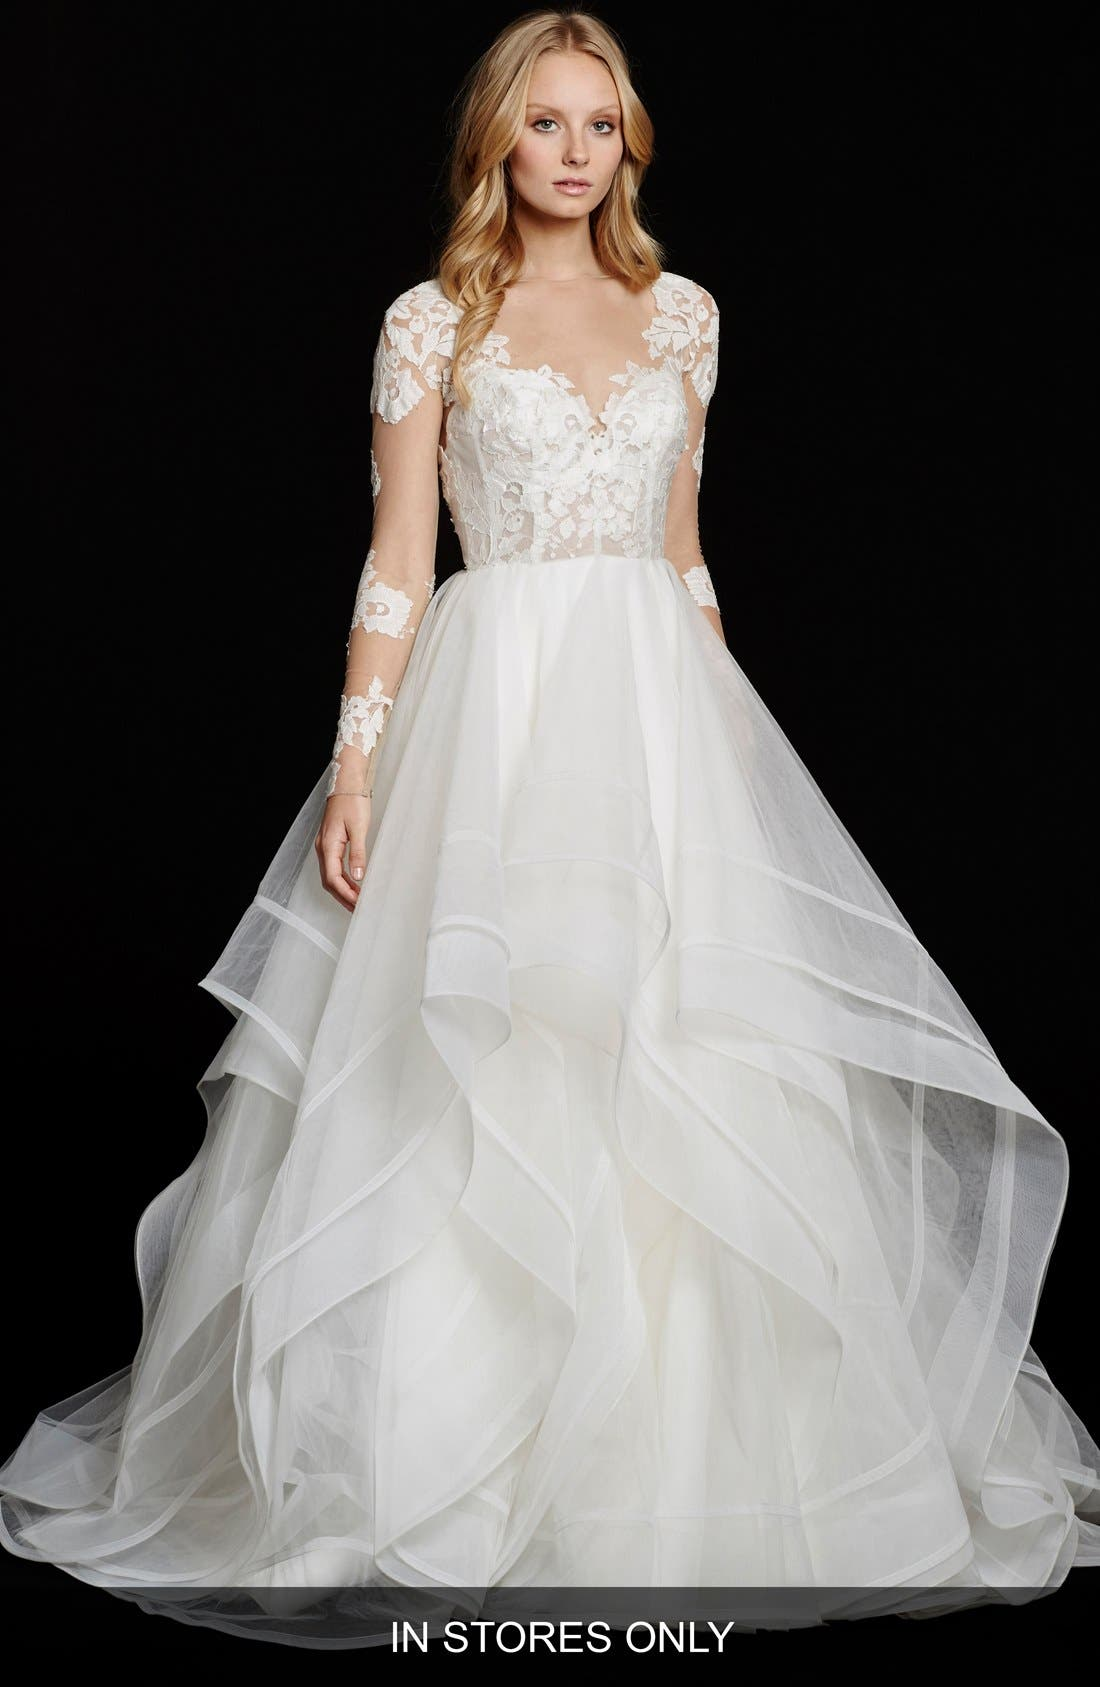 Hayley Paige 'Elysia' Long Sleeve Lace & Tulle Ballgown (In Stores Only)